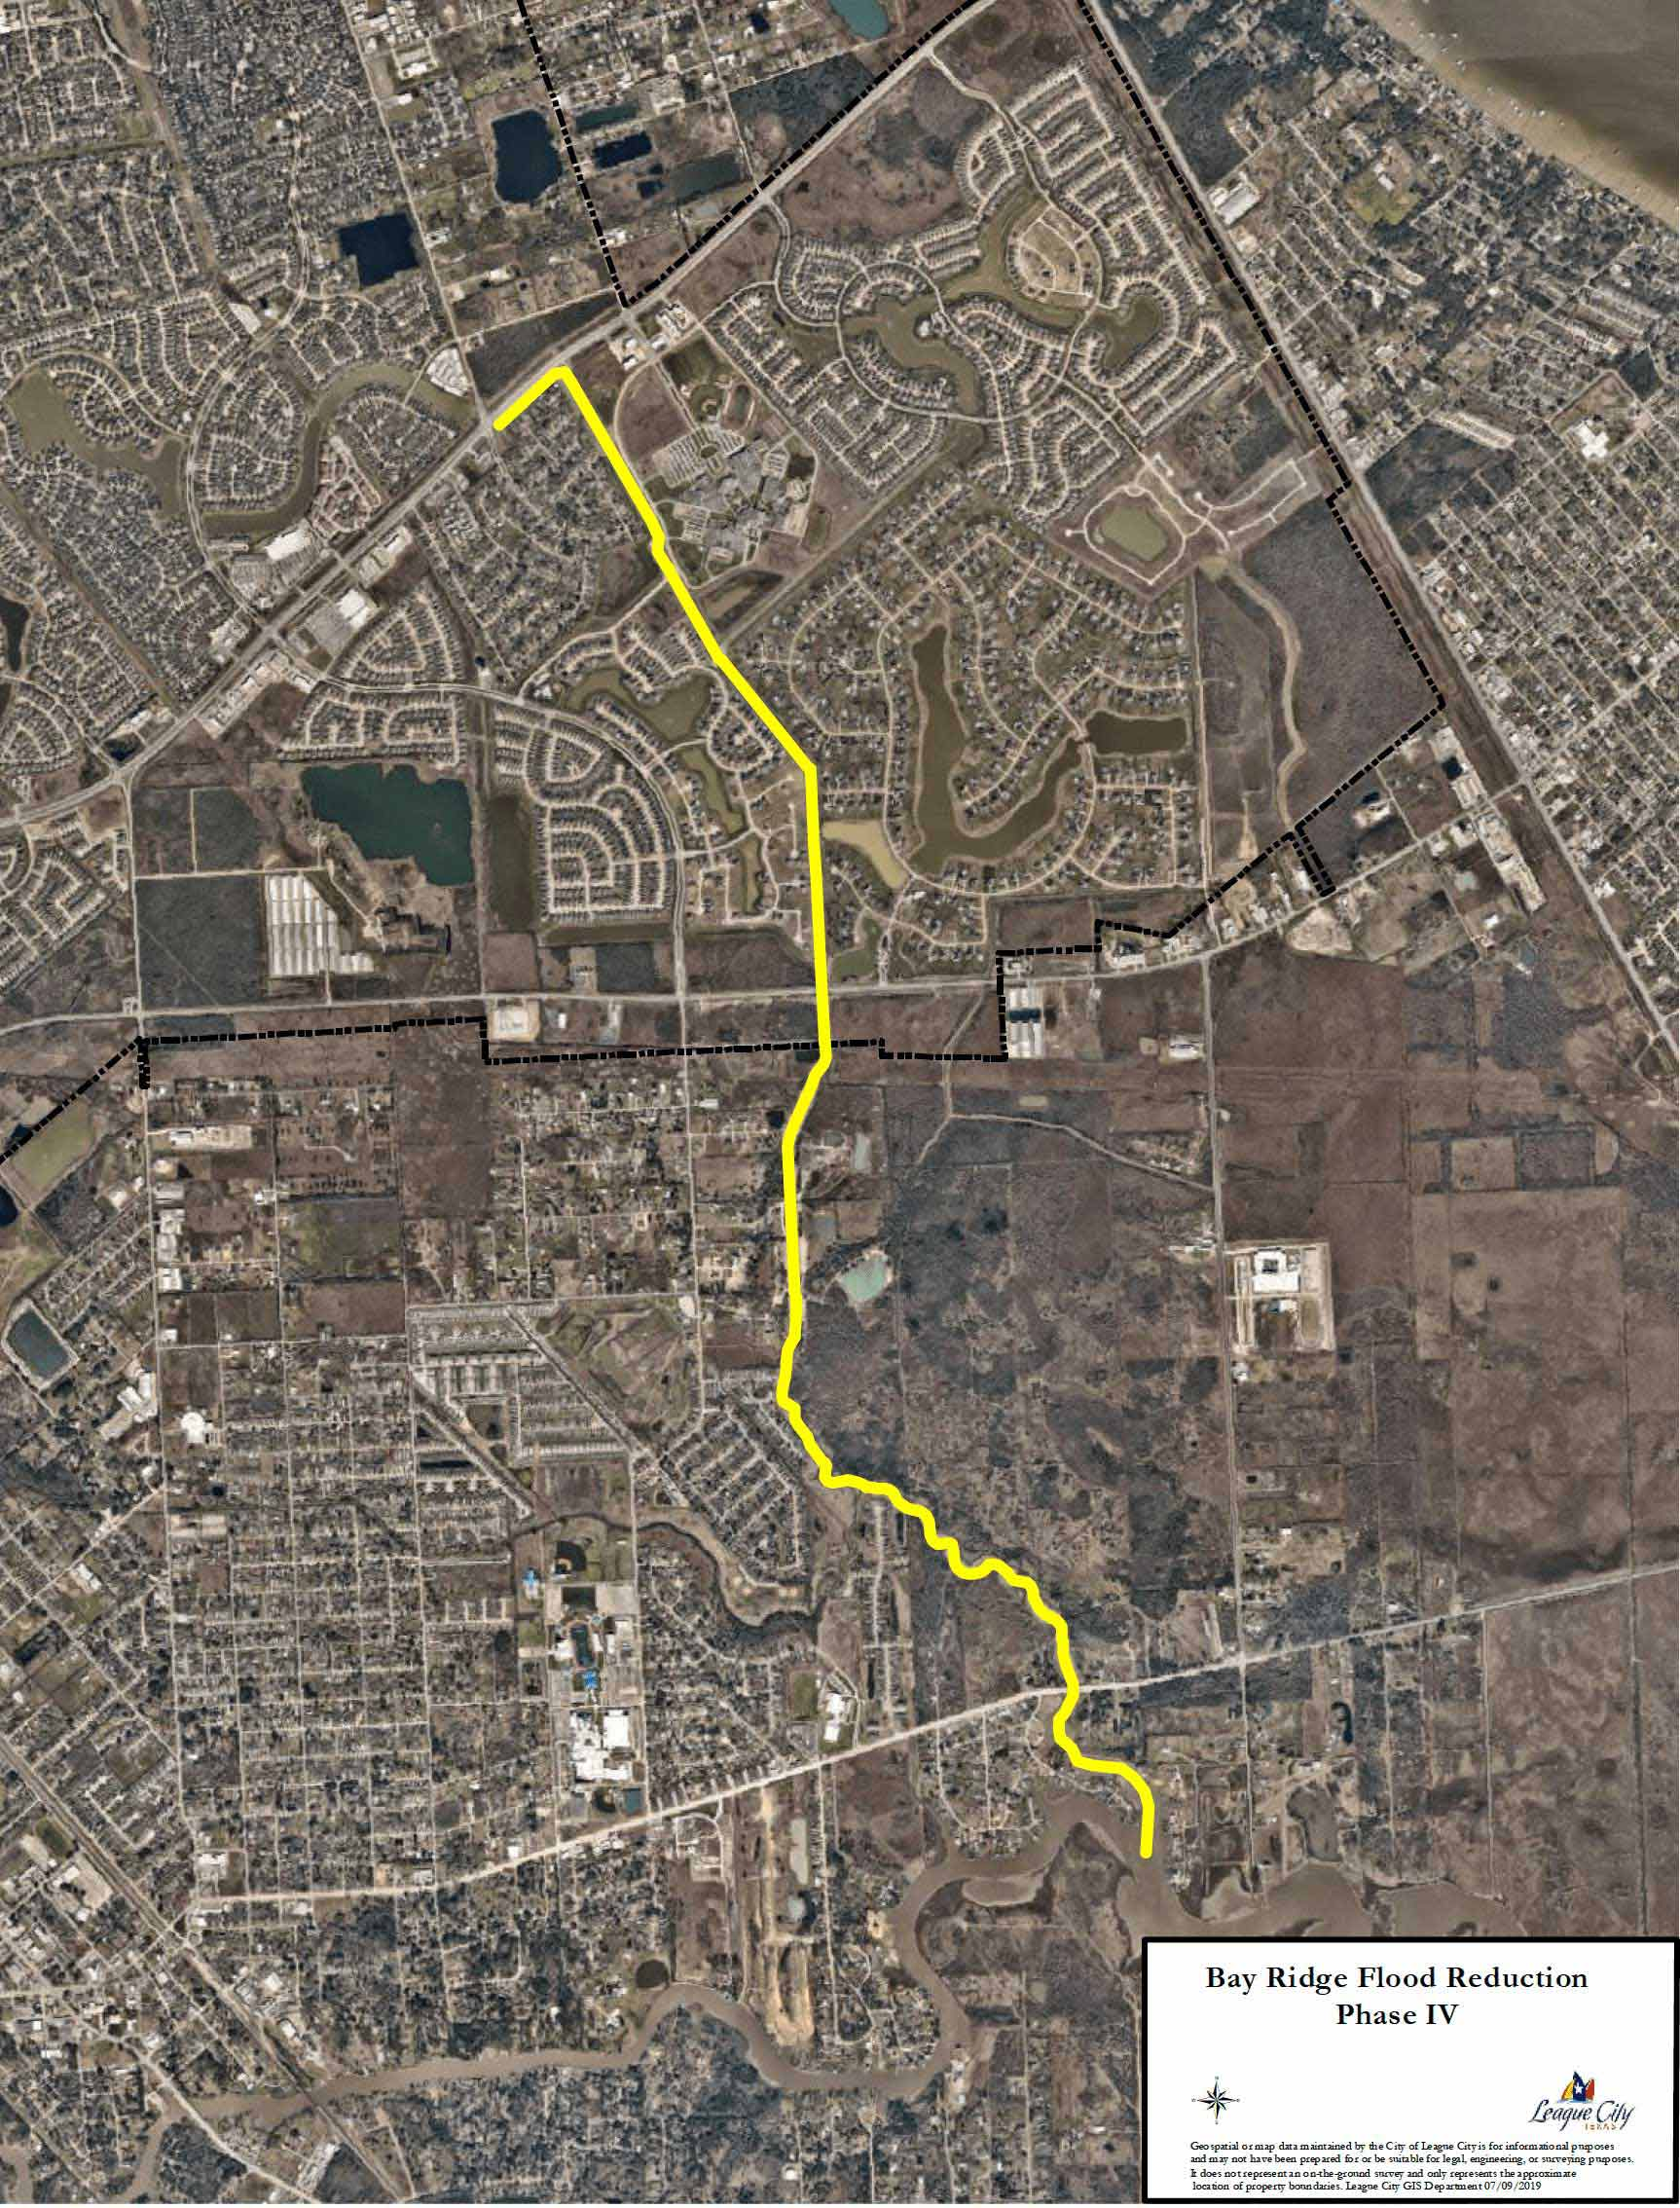 Bay Ridge Flood Reduction Phase IV aerial map